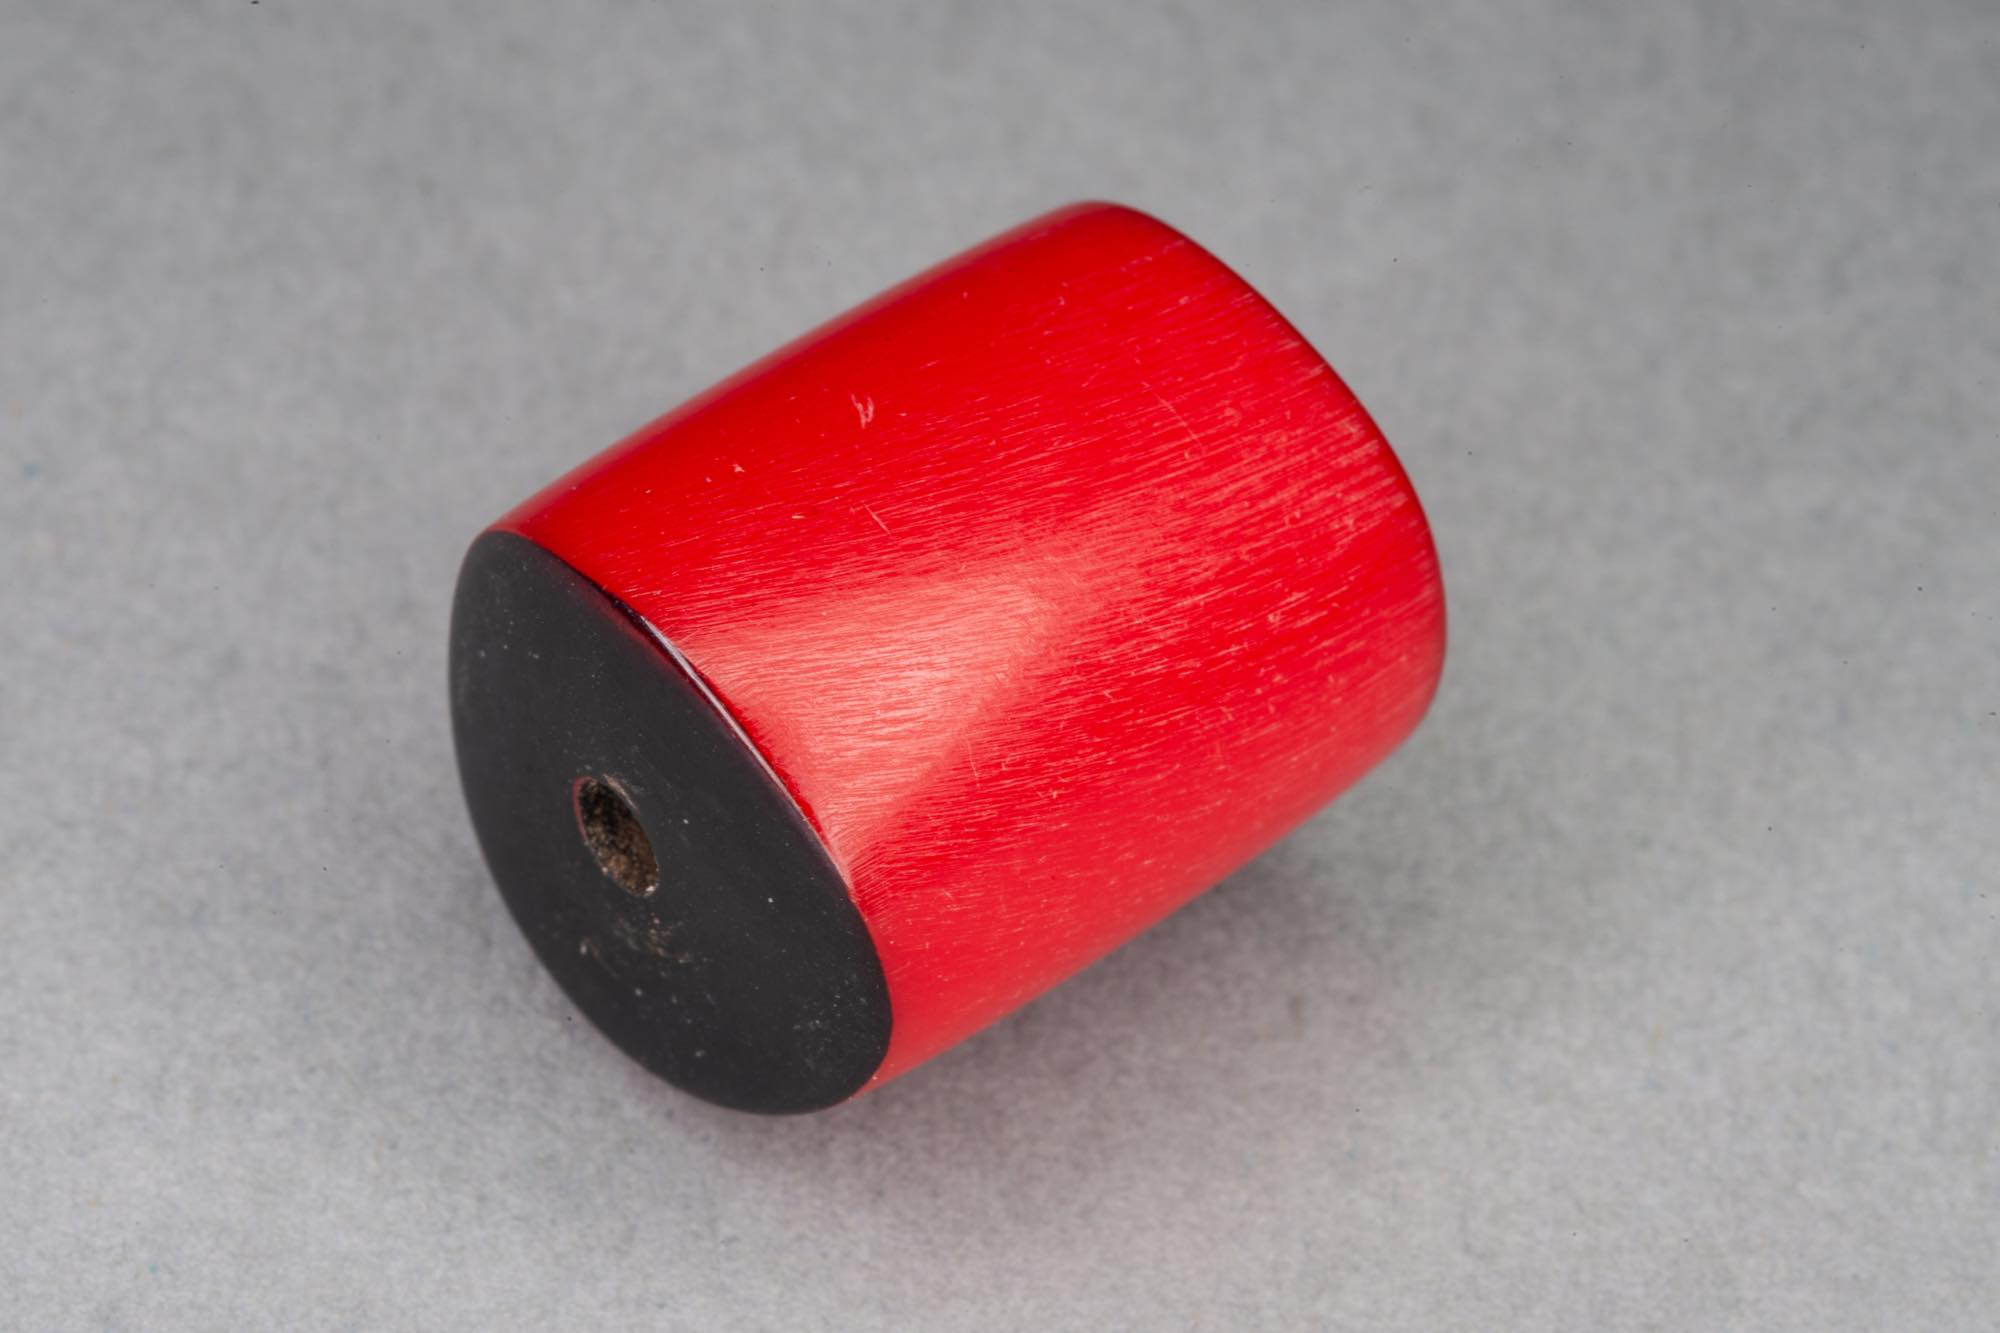 Red Barrel Resin Bead With Wavy Ends, 19x17mm, 2mm hole